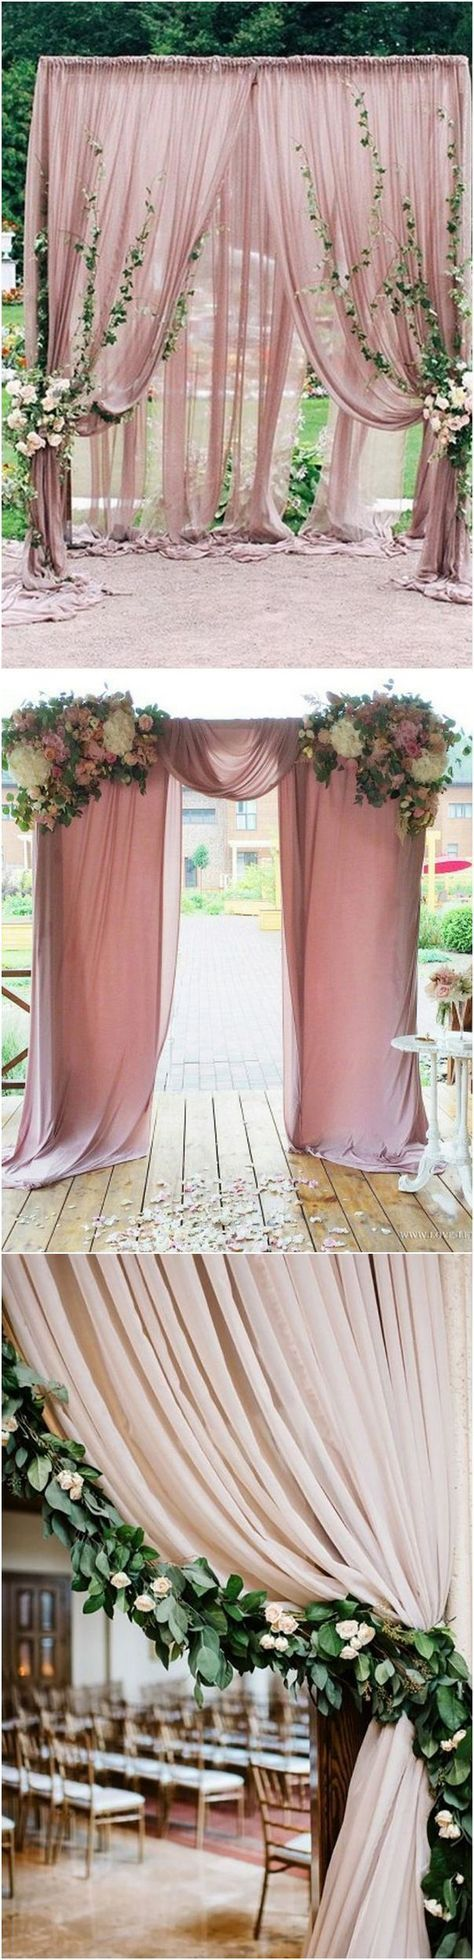 Best 25 dusty rose color ideas on pinterest vintage for Dusty rose wall color